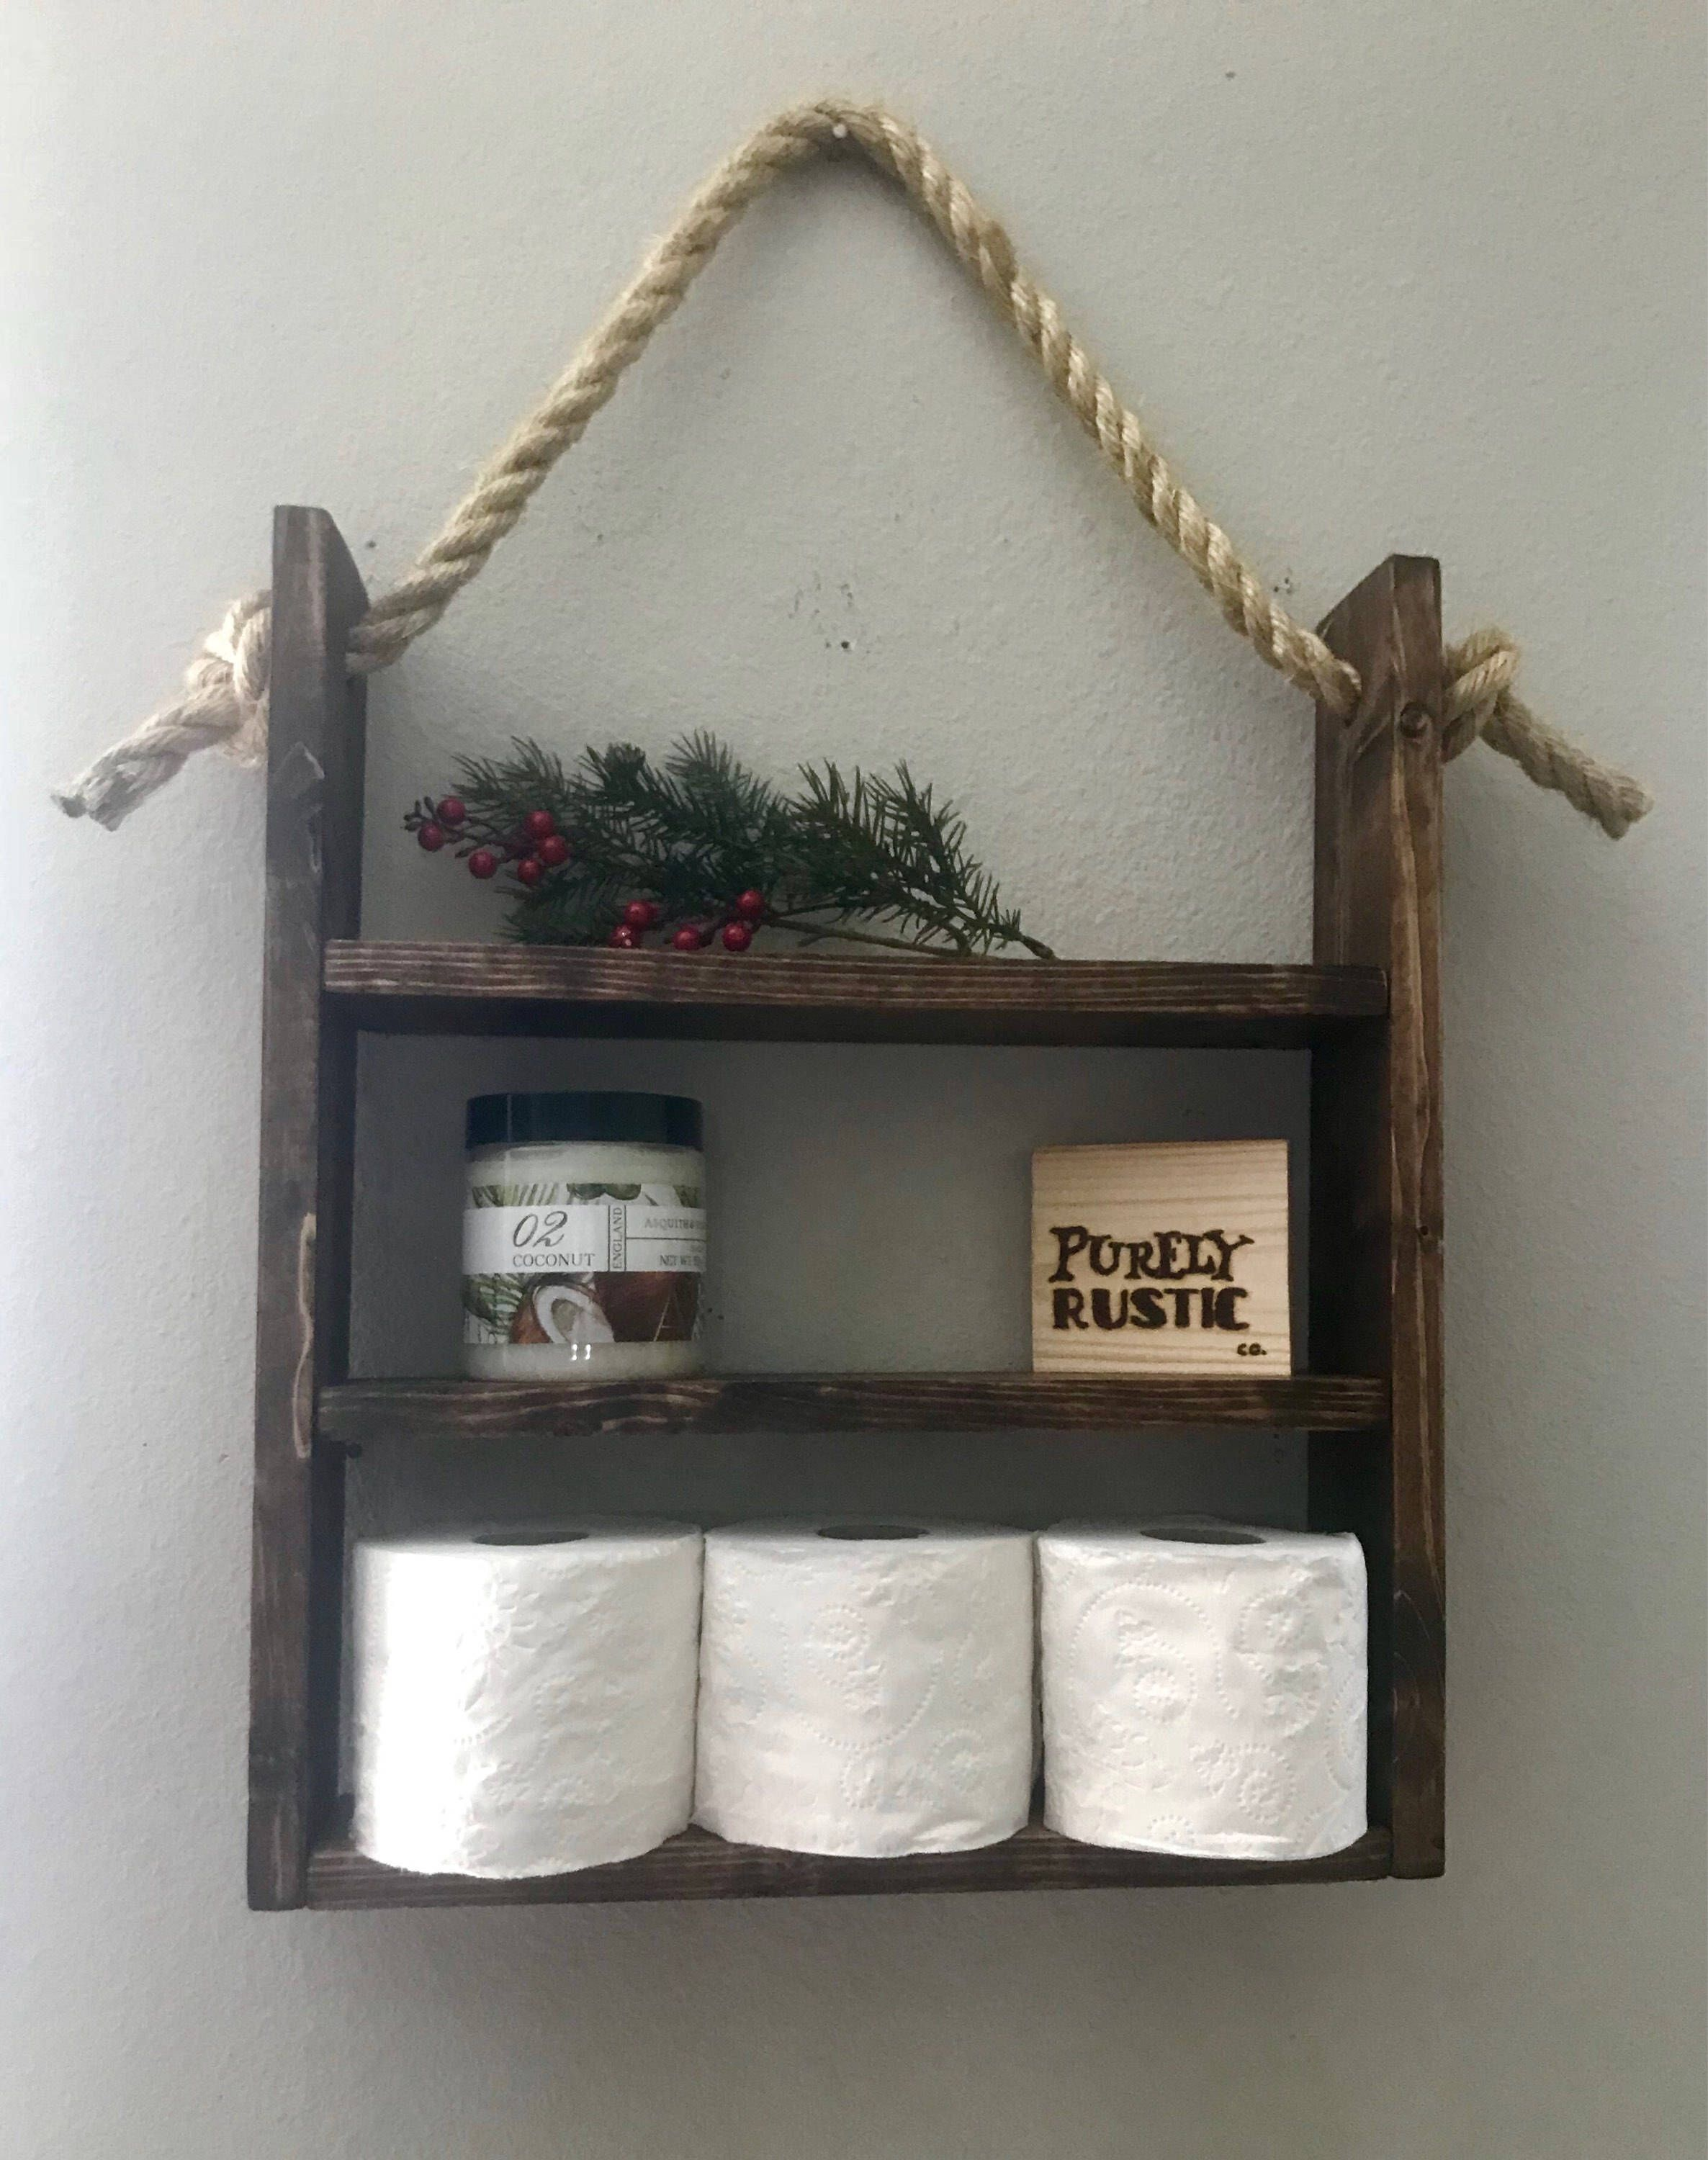 Excited to share the latest addition to my shop: Rustic bathroom